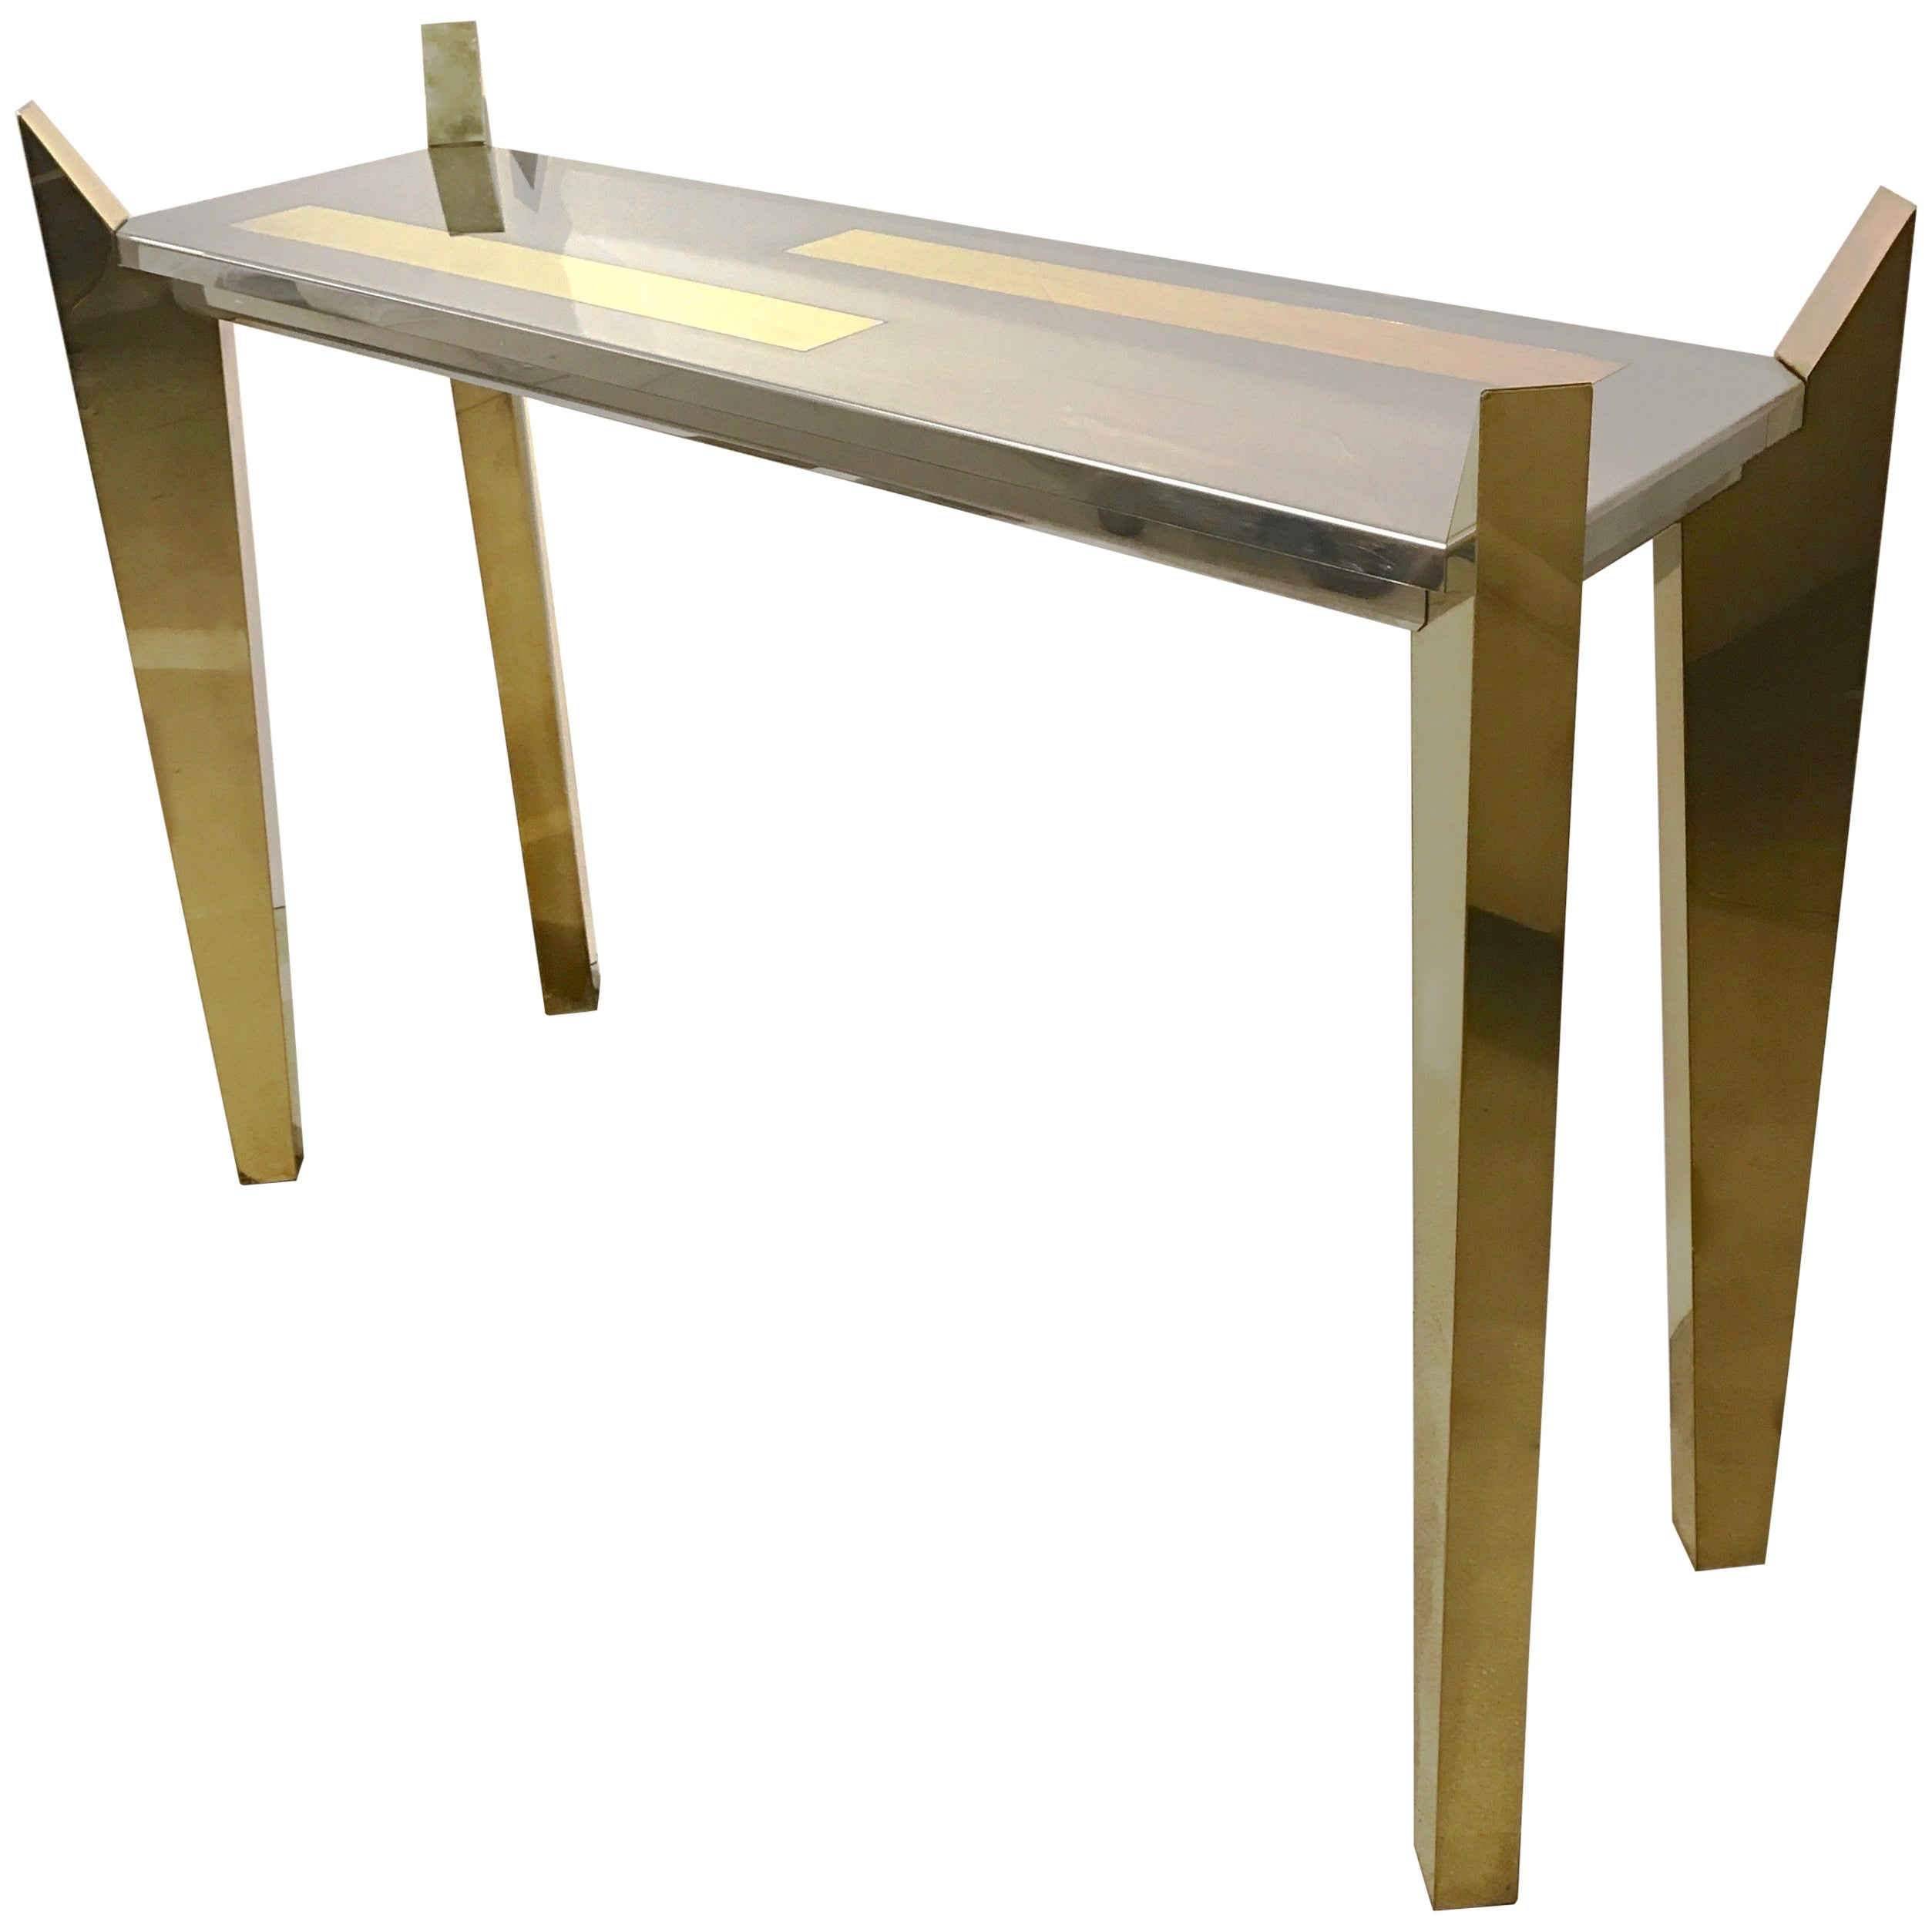 1970s Vintage Italian Brass and Nickel Console of Modern Graphic Design